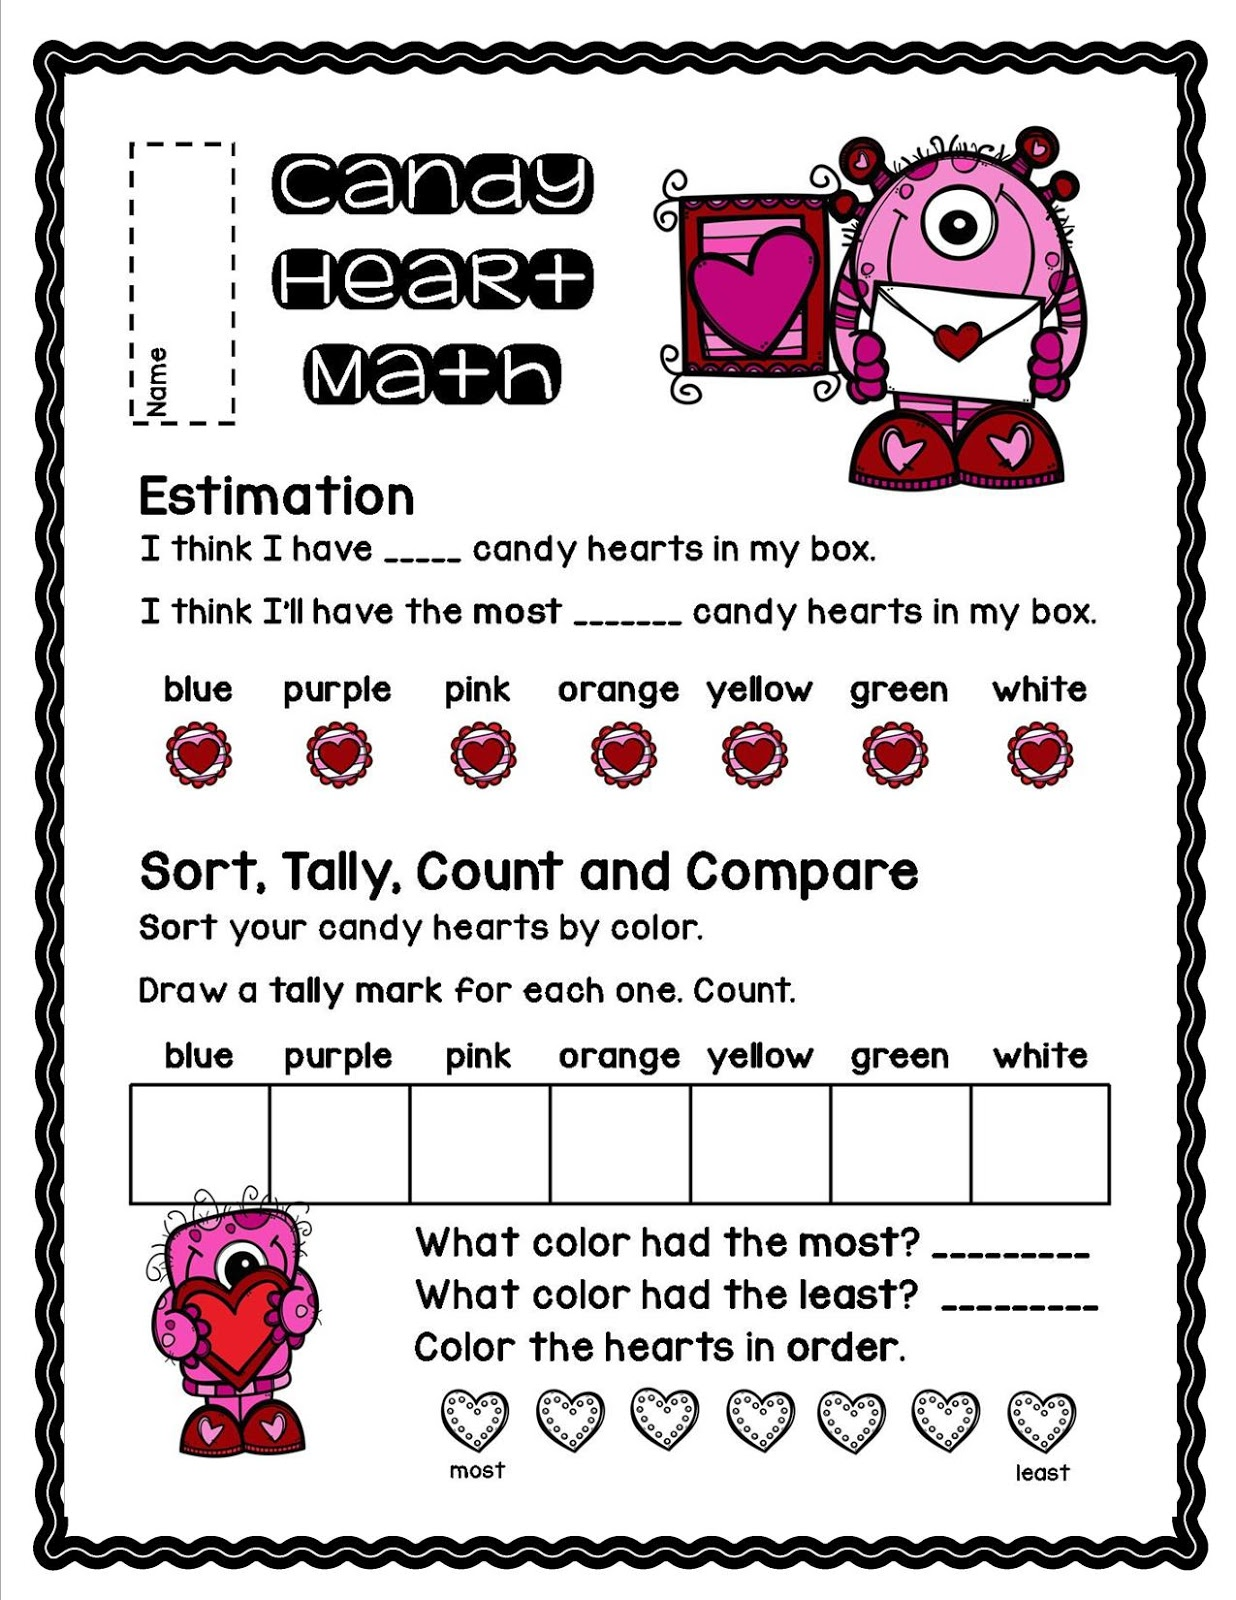 Lory S 2nd Grade Skills Candy Heart Math